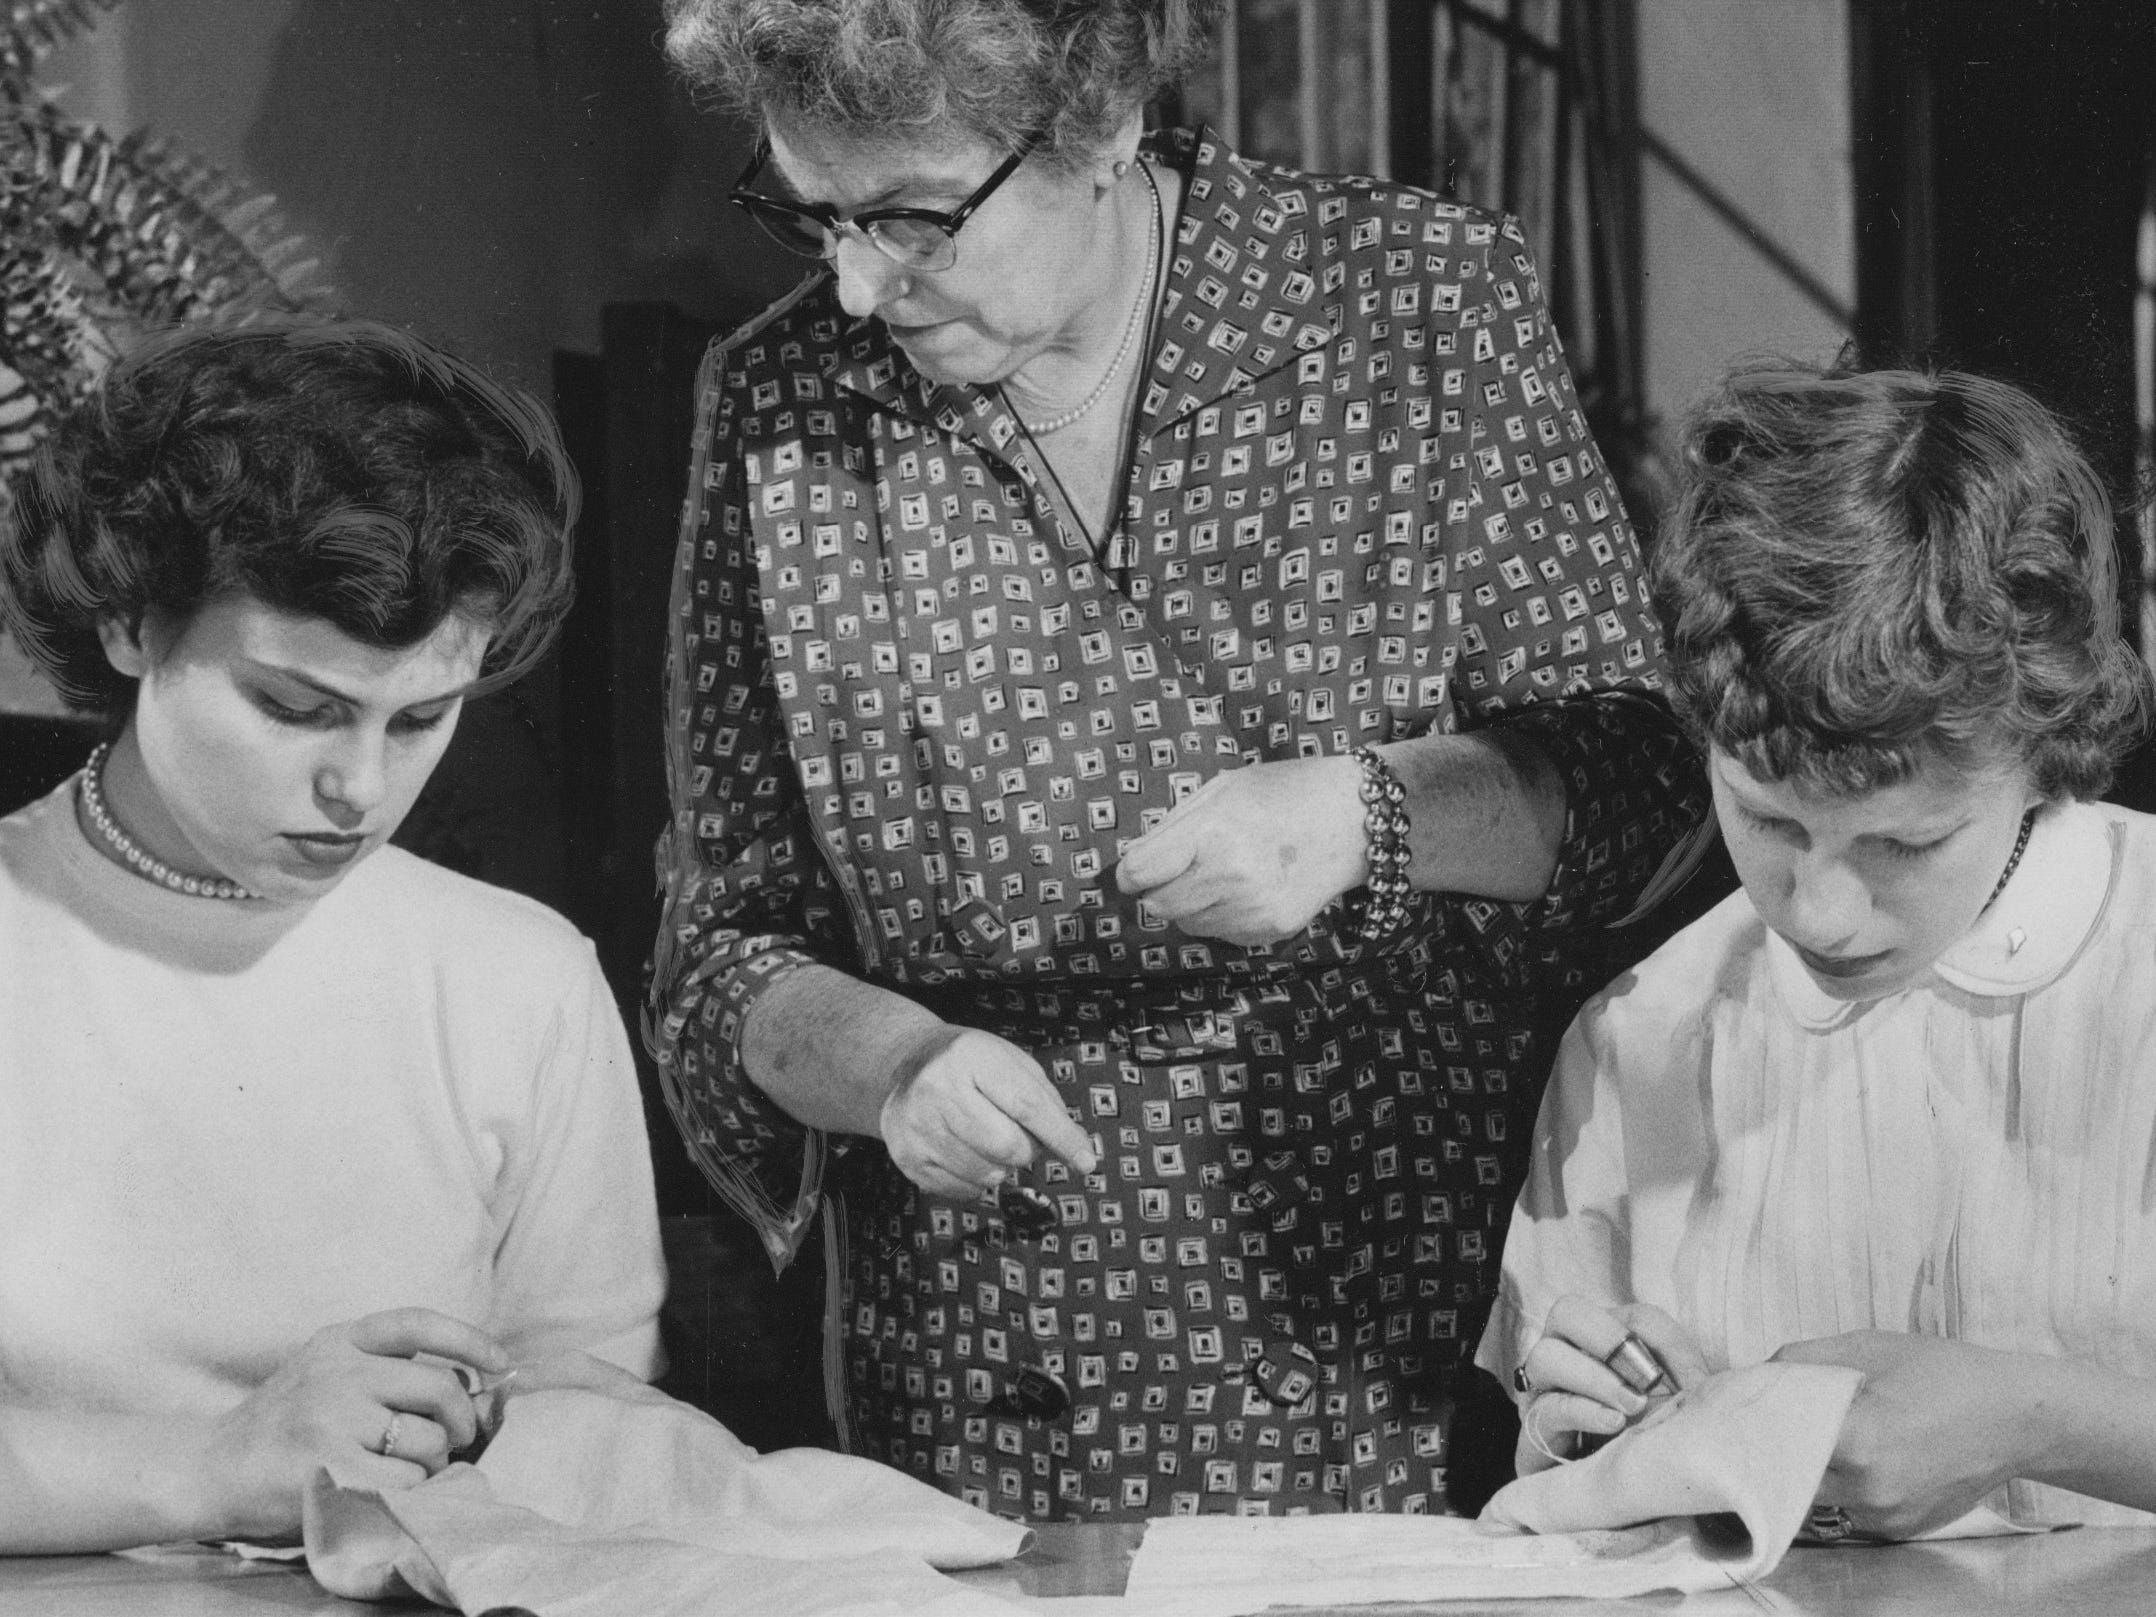 Teacher Margaret Simonds keeps an eye on the stitch work of Joyce Moran (left) and Barbara Griswold in the hand-sewing class at George washington High School in 1955.